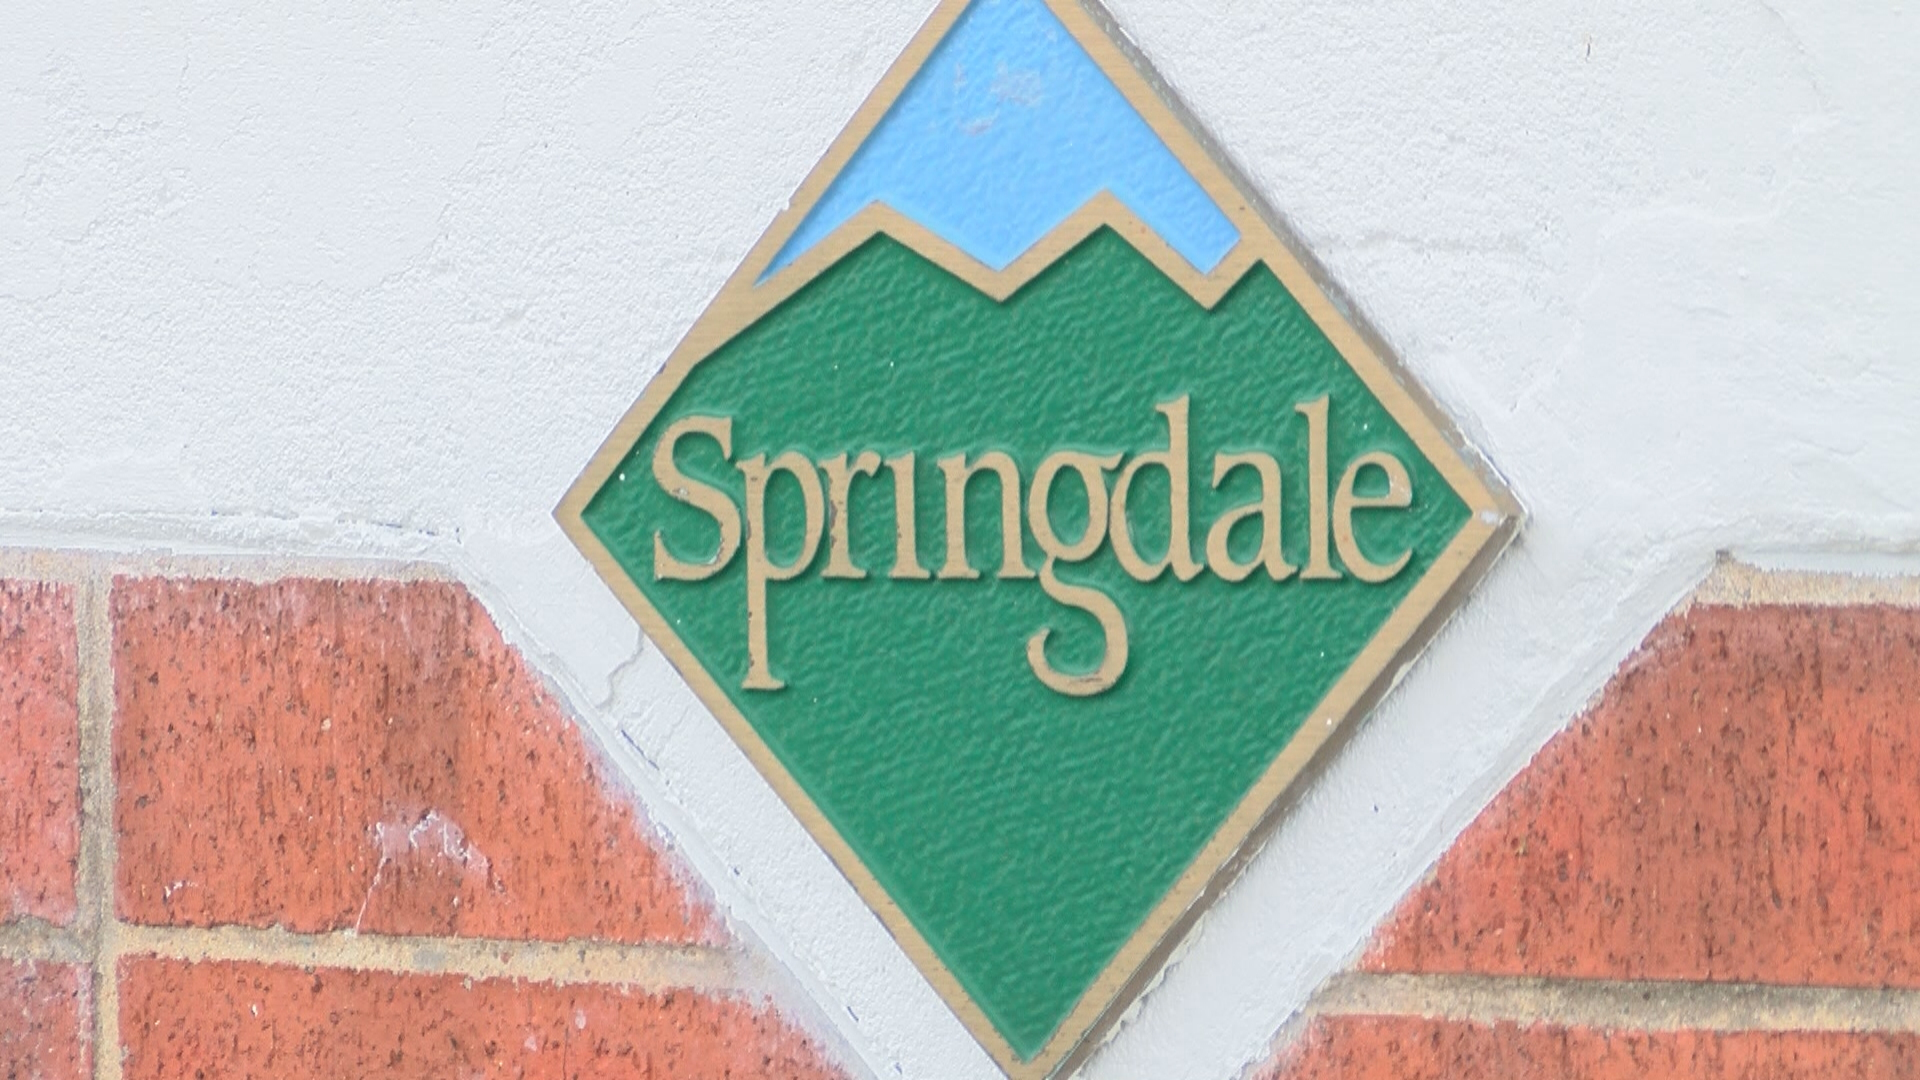 SPRINGDALE CITY COUNCIL_1511924633448.jpg